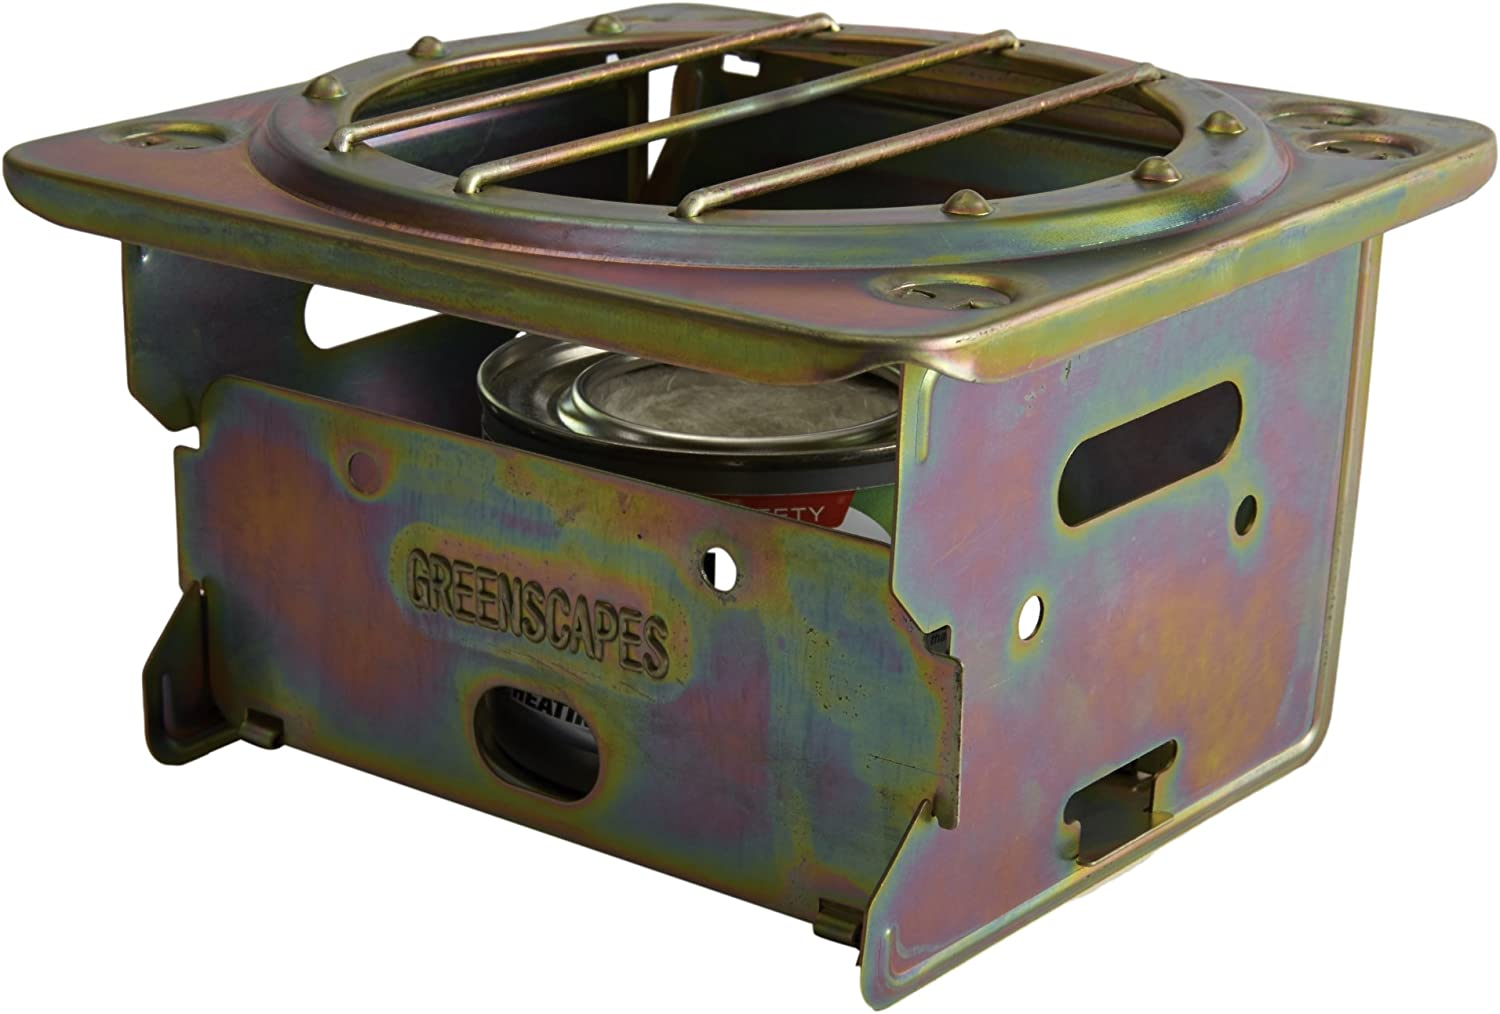 Greenscapes Portable Backpacking and Camping Stove in Bronze: Flat Surface, Foldaway